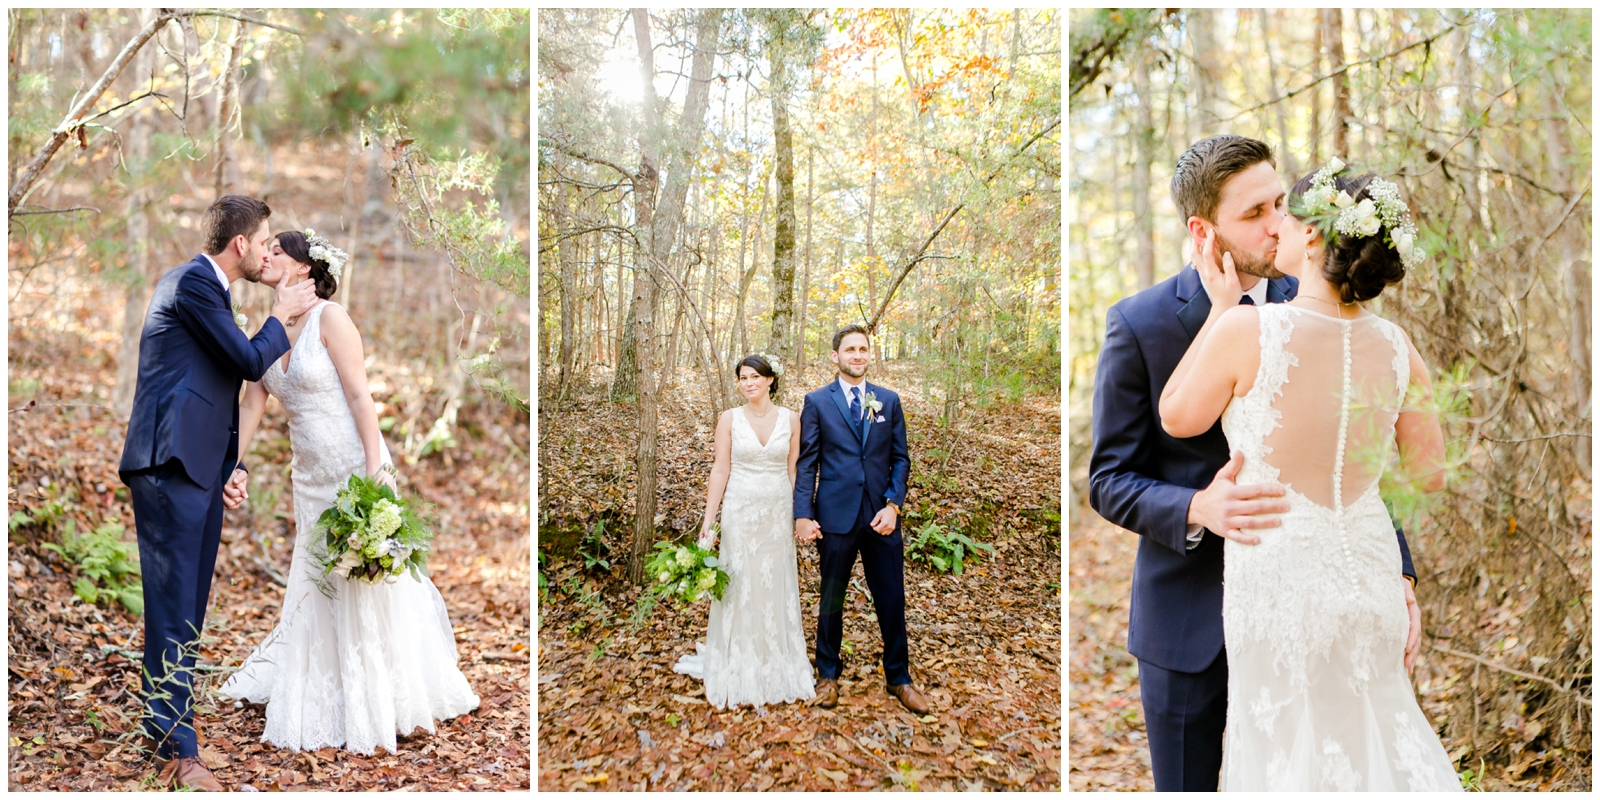 R&G_AtlantaWeddingPhotographer_WhiteOaksBarn_0013